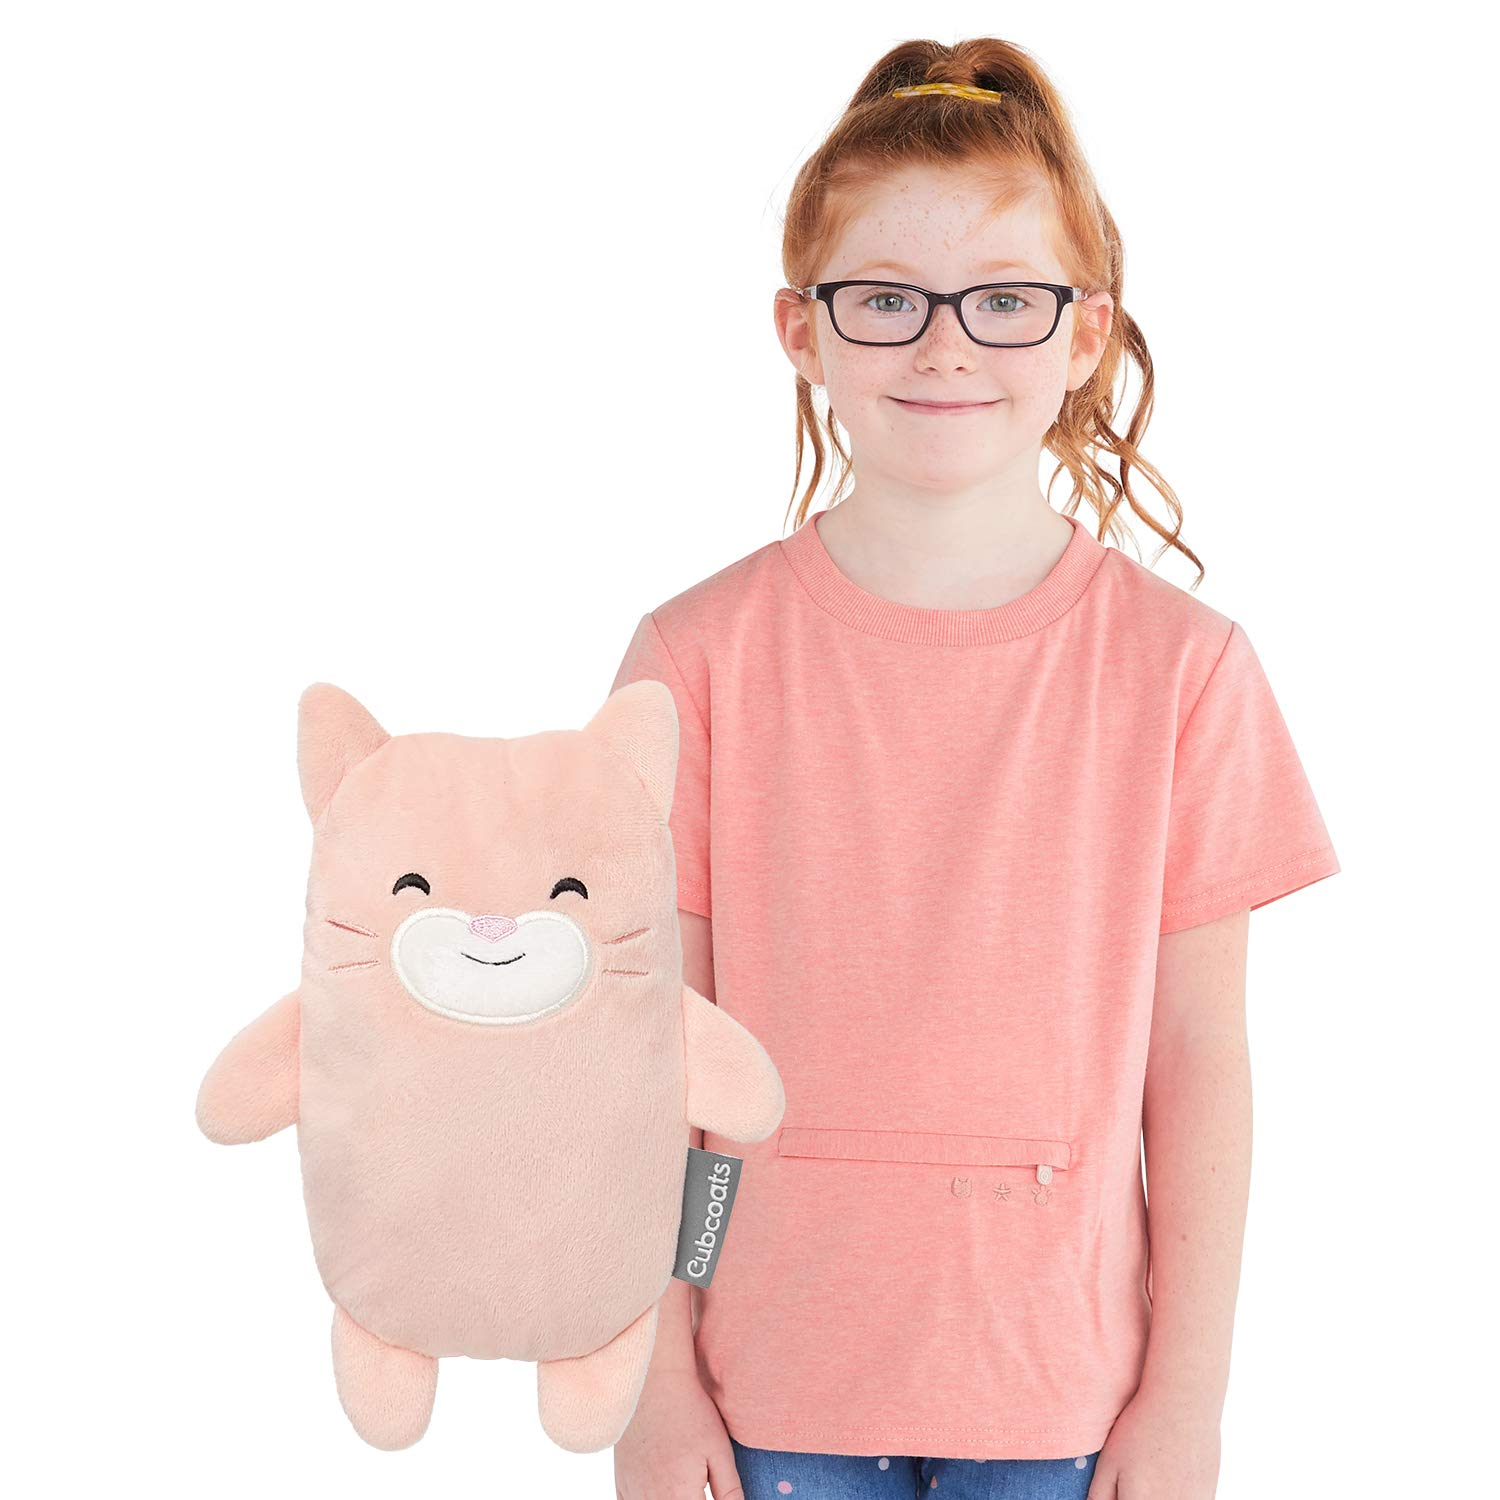 Cubcoats Kali The Kitty 2-in-1 Transforming Tee T-Shirt and Soft Plushie